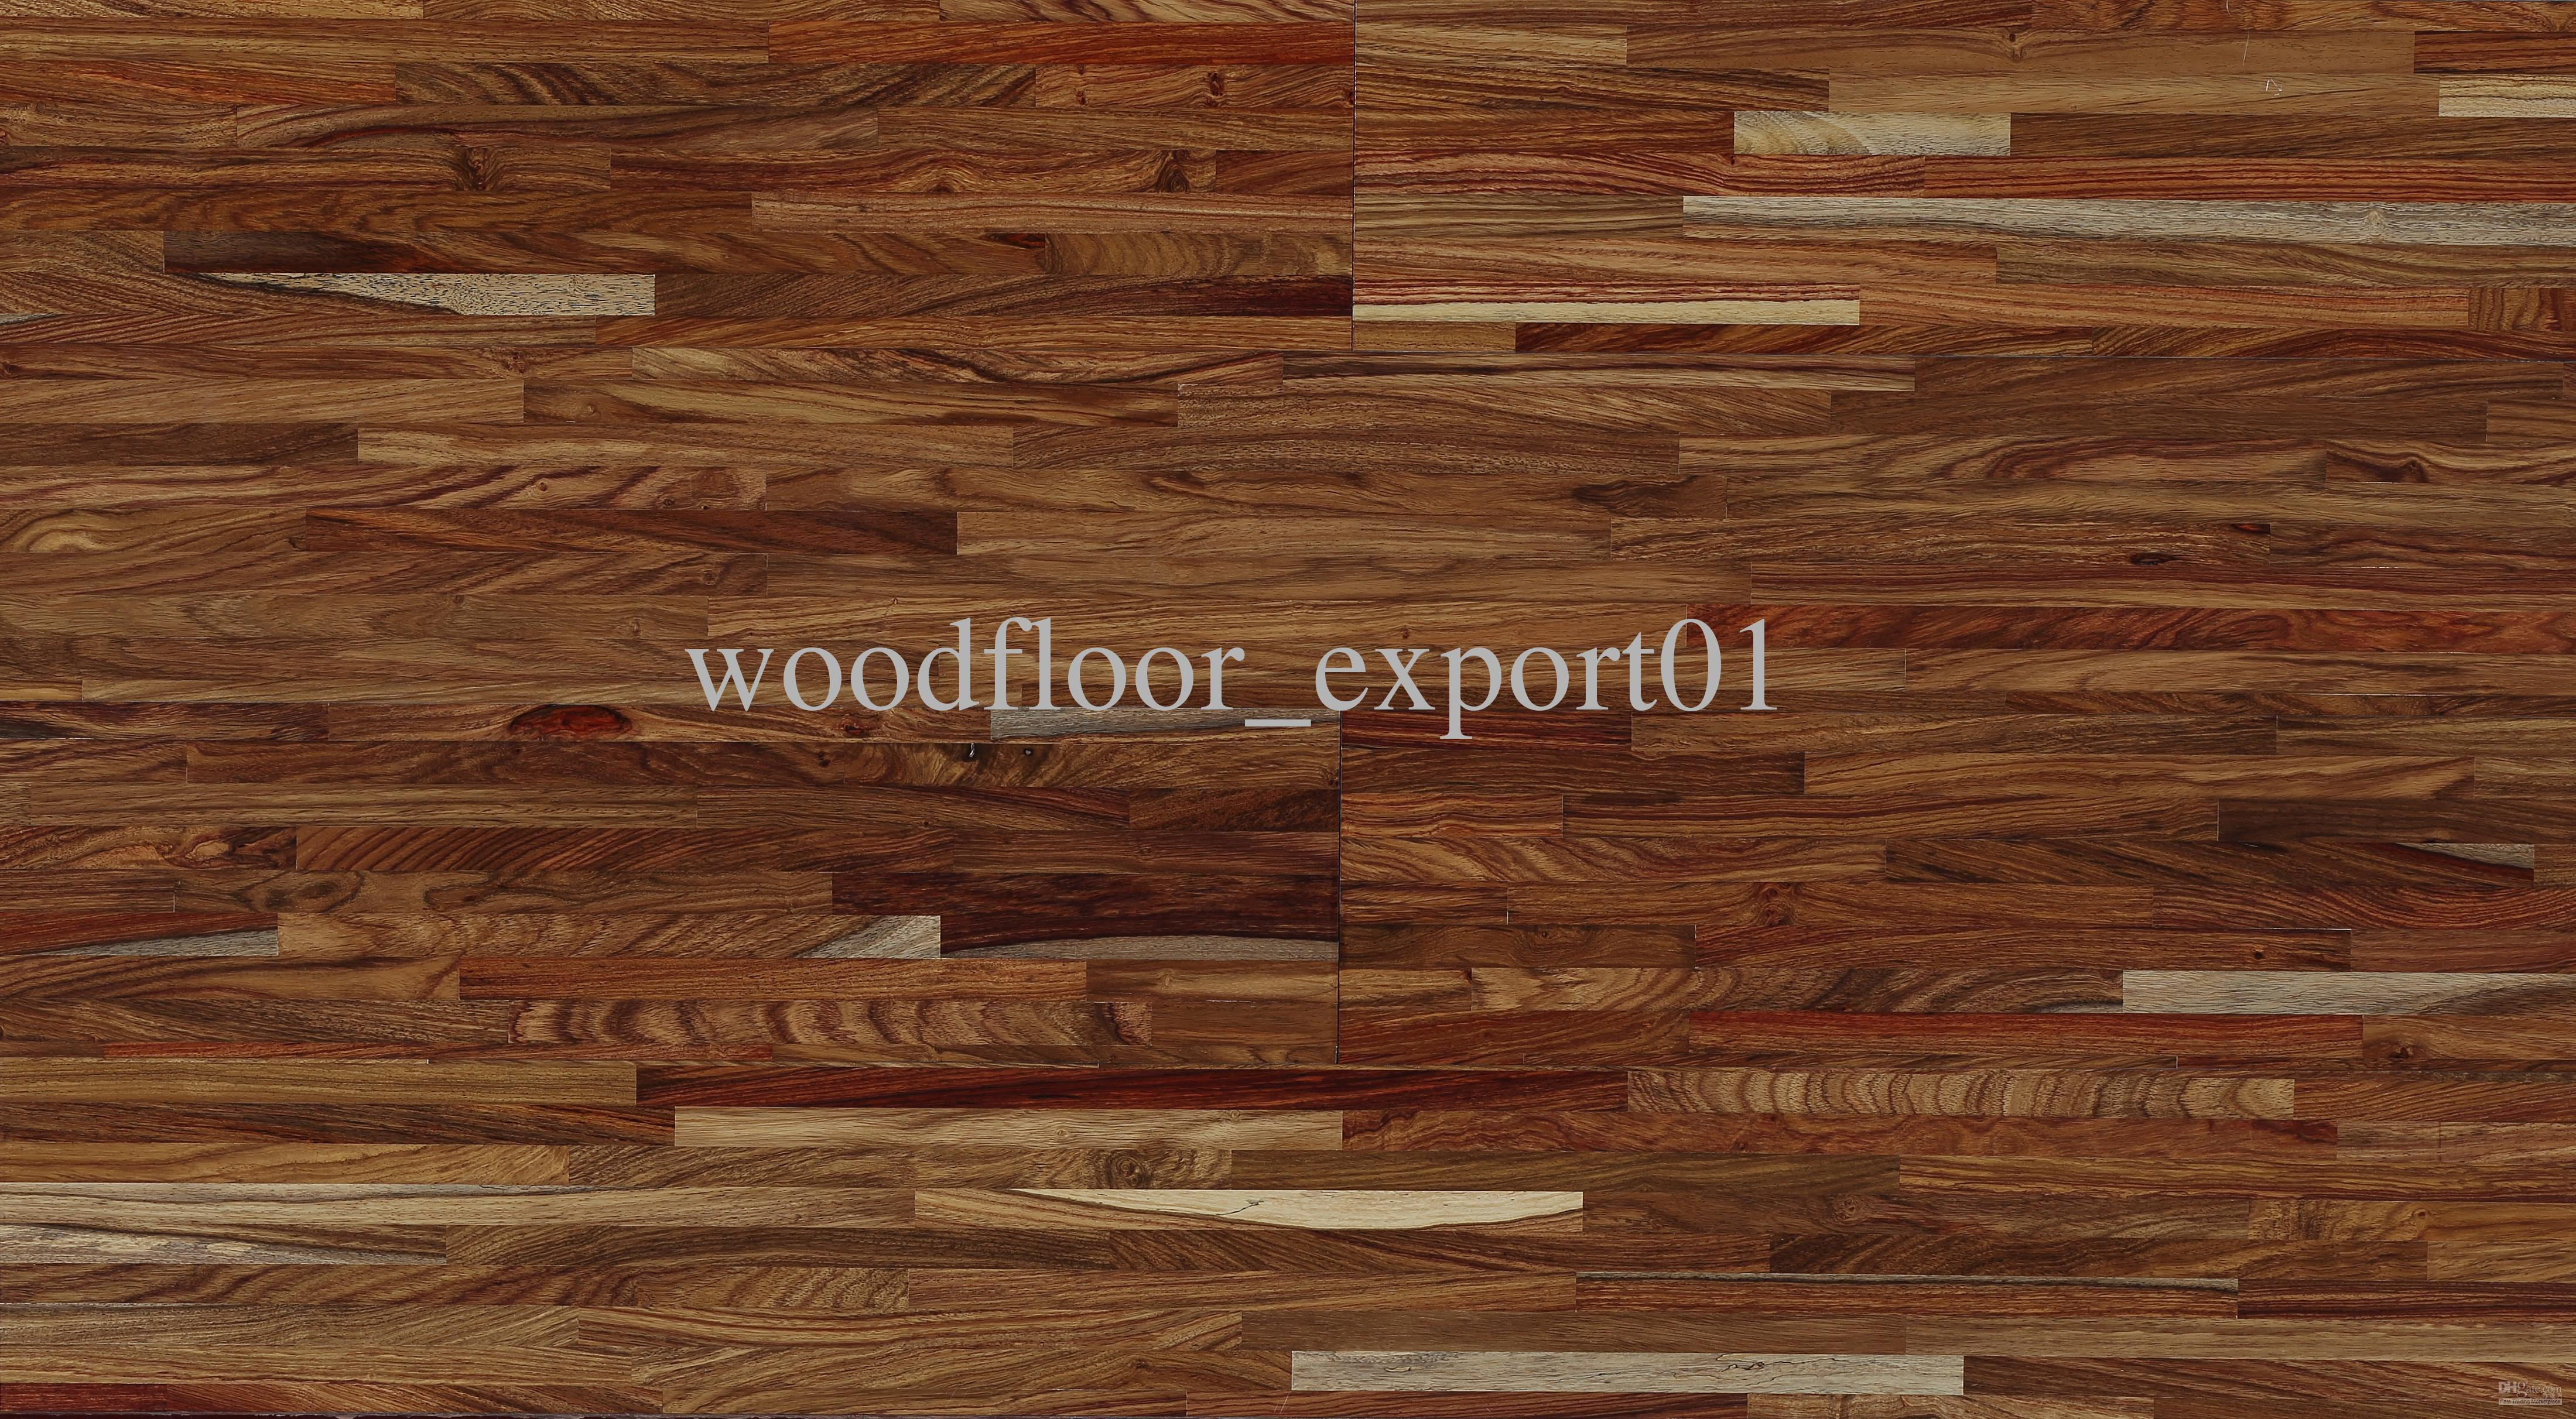 weight of hardwood flooring of rosewood hardwood flooring large living room floor european style with regard to features specifications rosewood parquet wood flooring paintpu uv anti scratch painting gloss satin or semi gloss